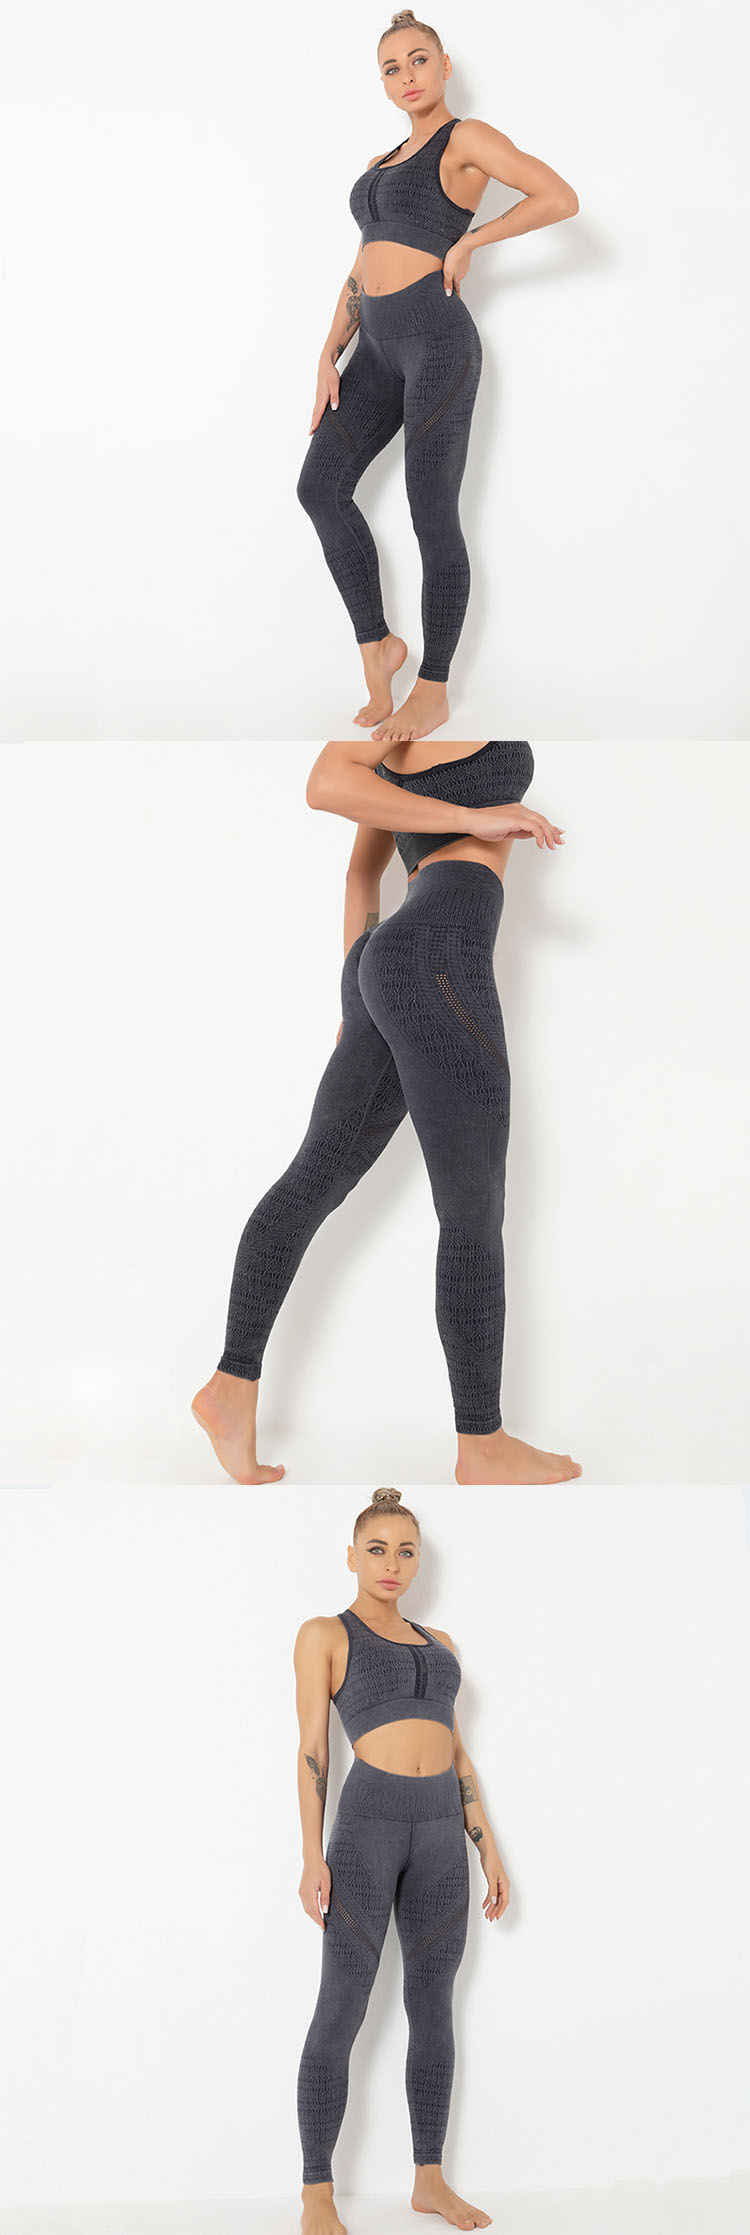 Provide sufficient support for the waist and hide the small belly.